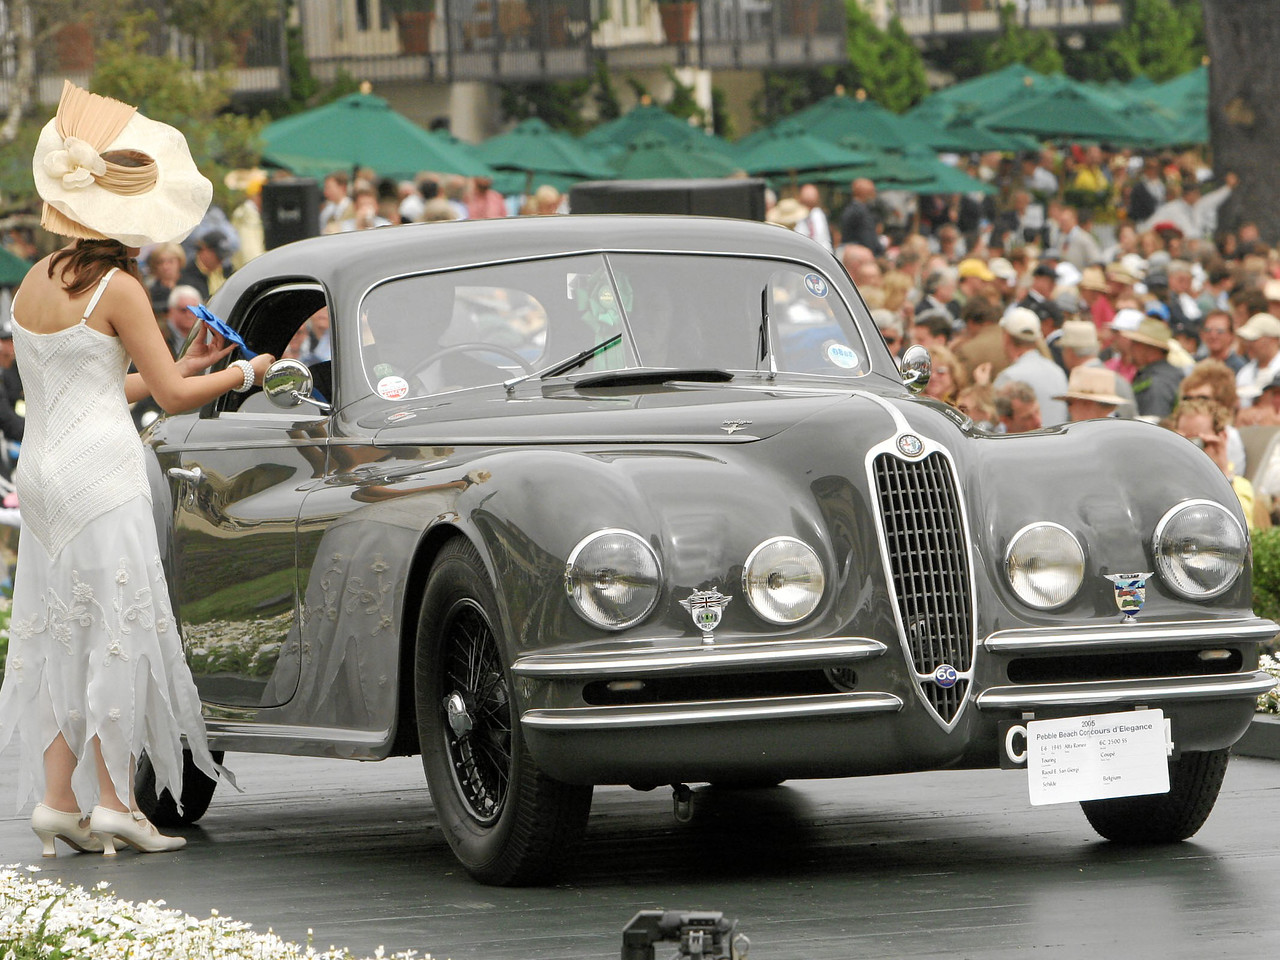 1945 Alfa Romeo 6C 2500 SS Touring Coupé owned by Raoul E. San Giorgi from Schilde, Belgium 1st Class E-6  (Alfa Romeo 6C 2300 and 6C 2500)